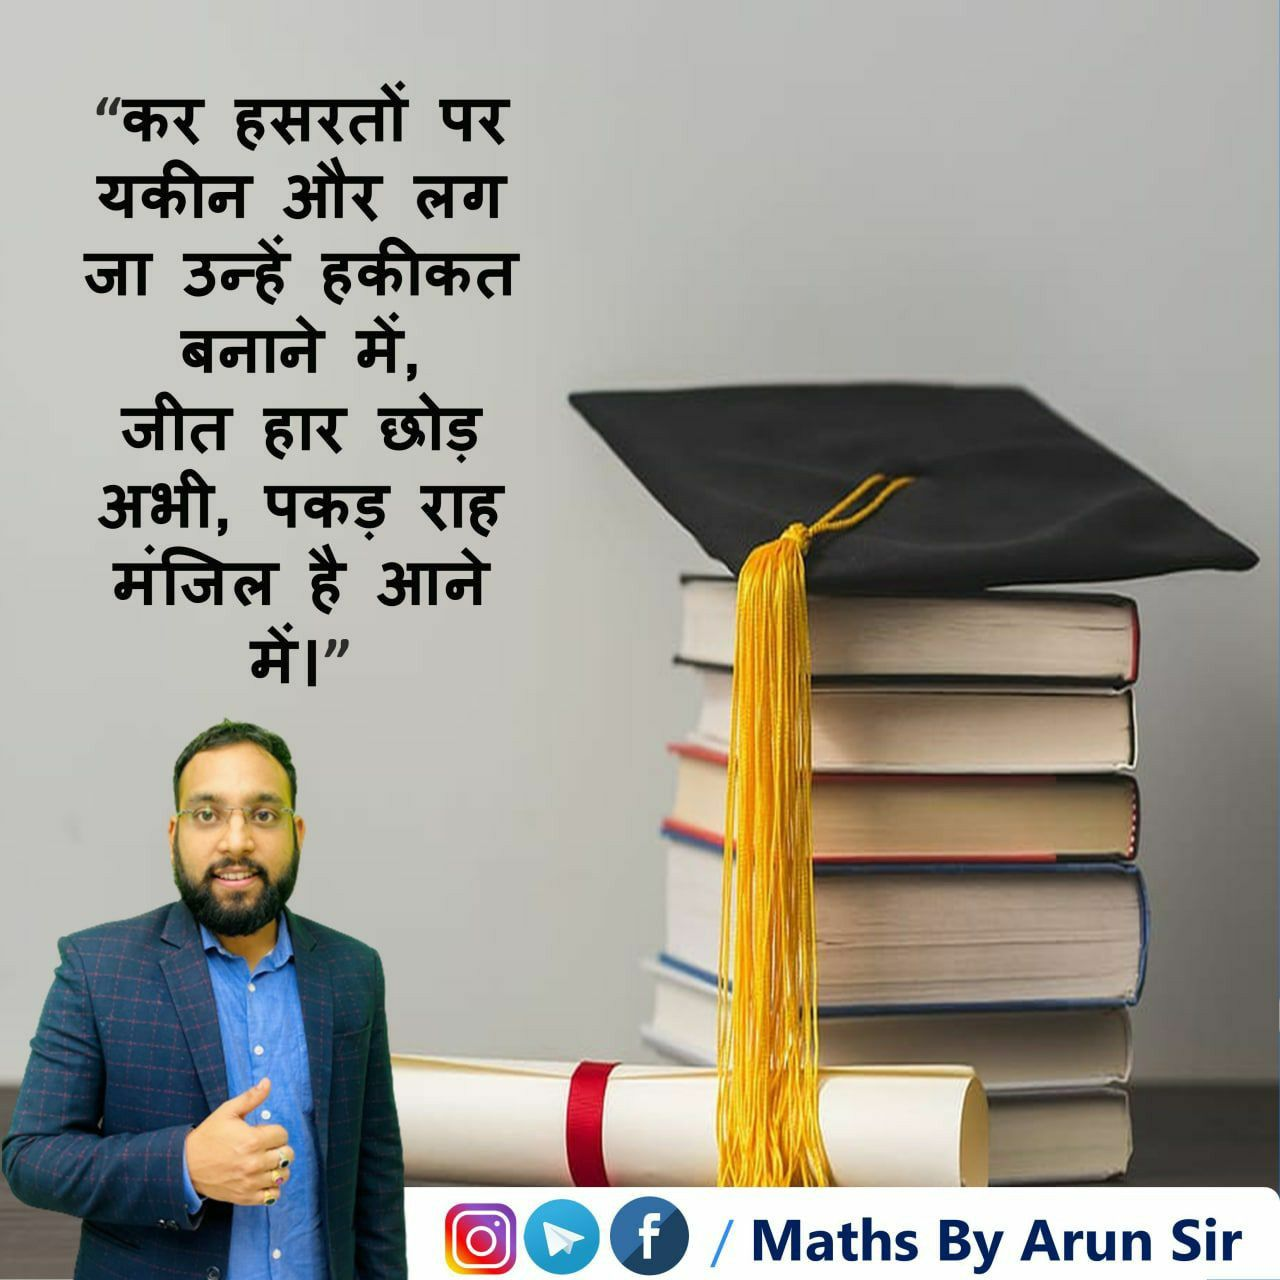 Good Morning Students!!!! Please like and Share with your Friends. #goodmorning #mathsbyarunsir #goodvibesonly #goodvibes #quotes #quotesoftheday #thursday #thursdayvibes #thursdaymotivation #ThursdayThoughts #thursdaymorning